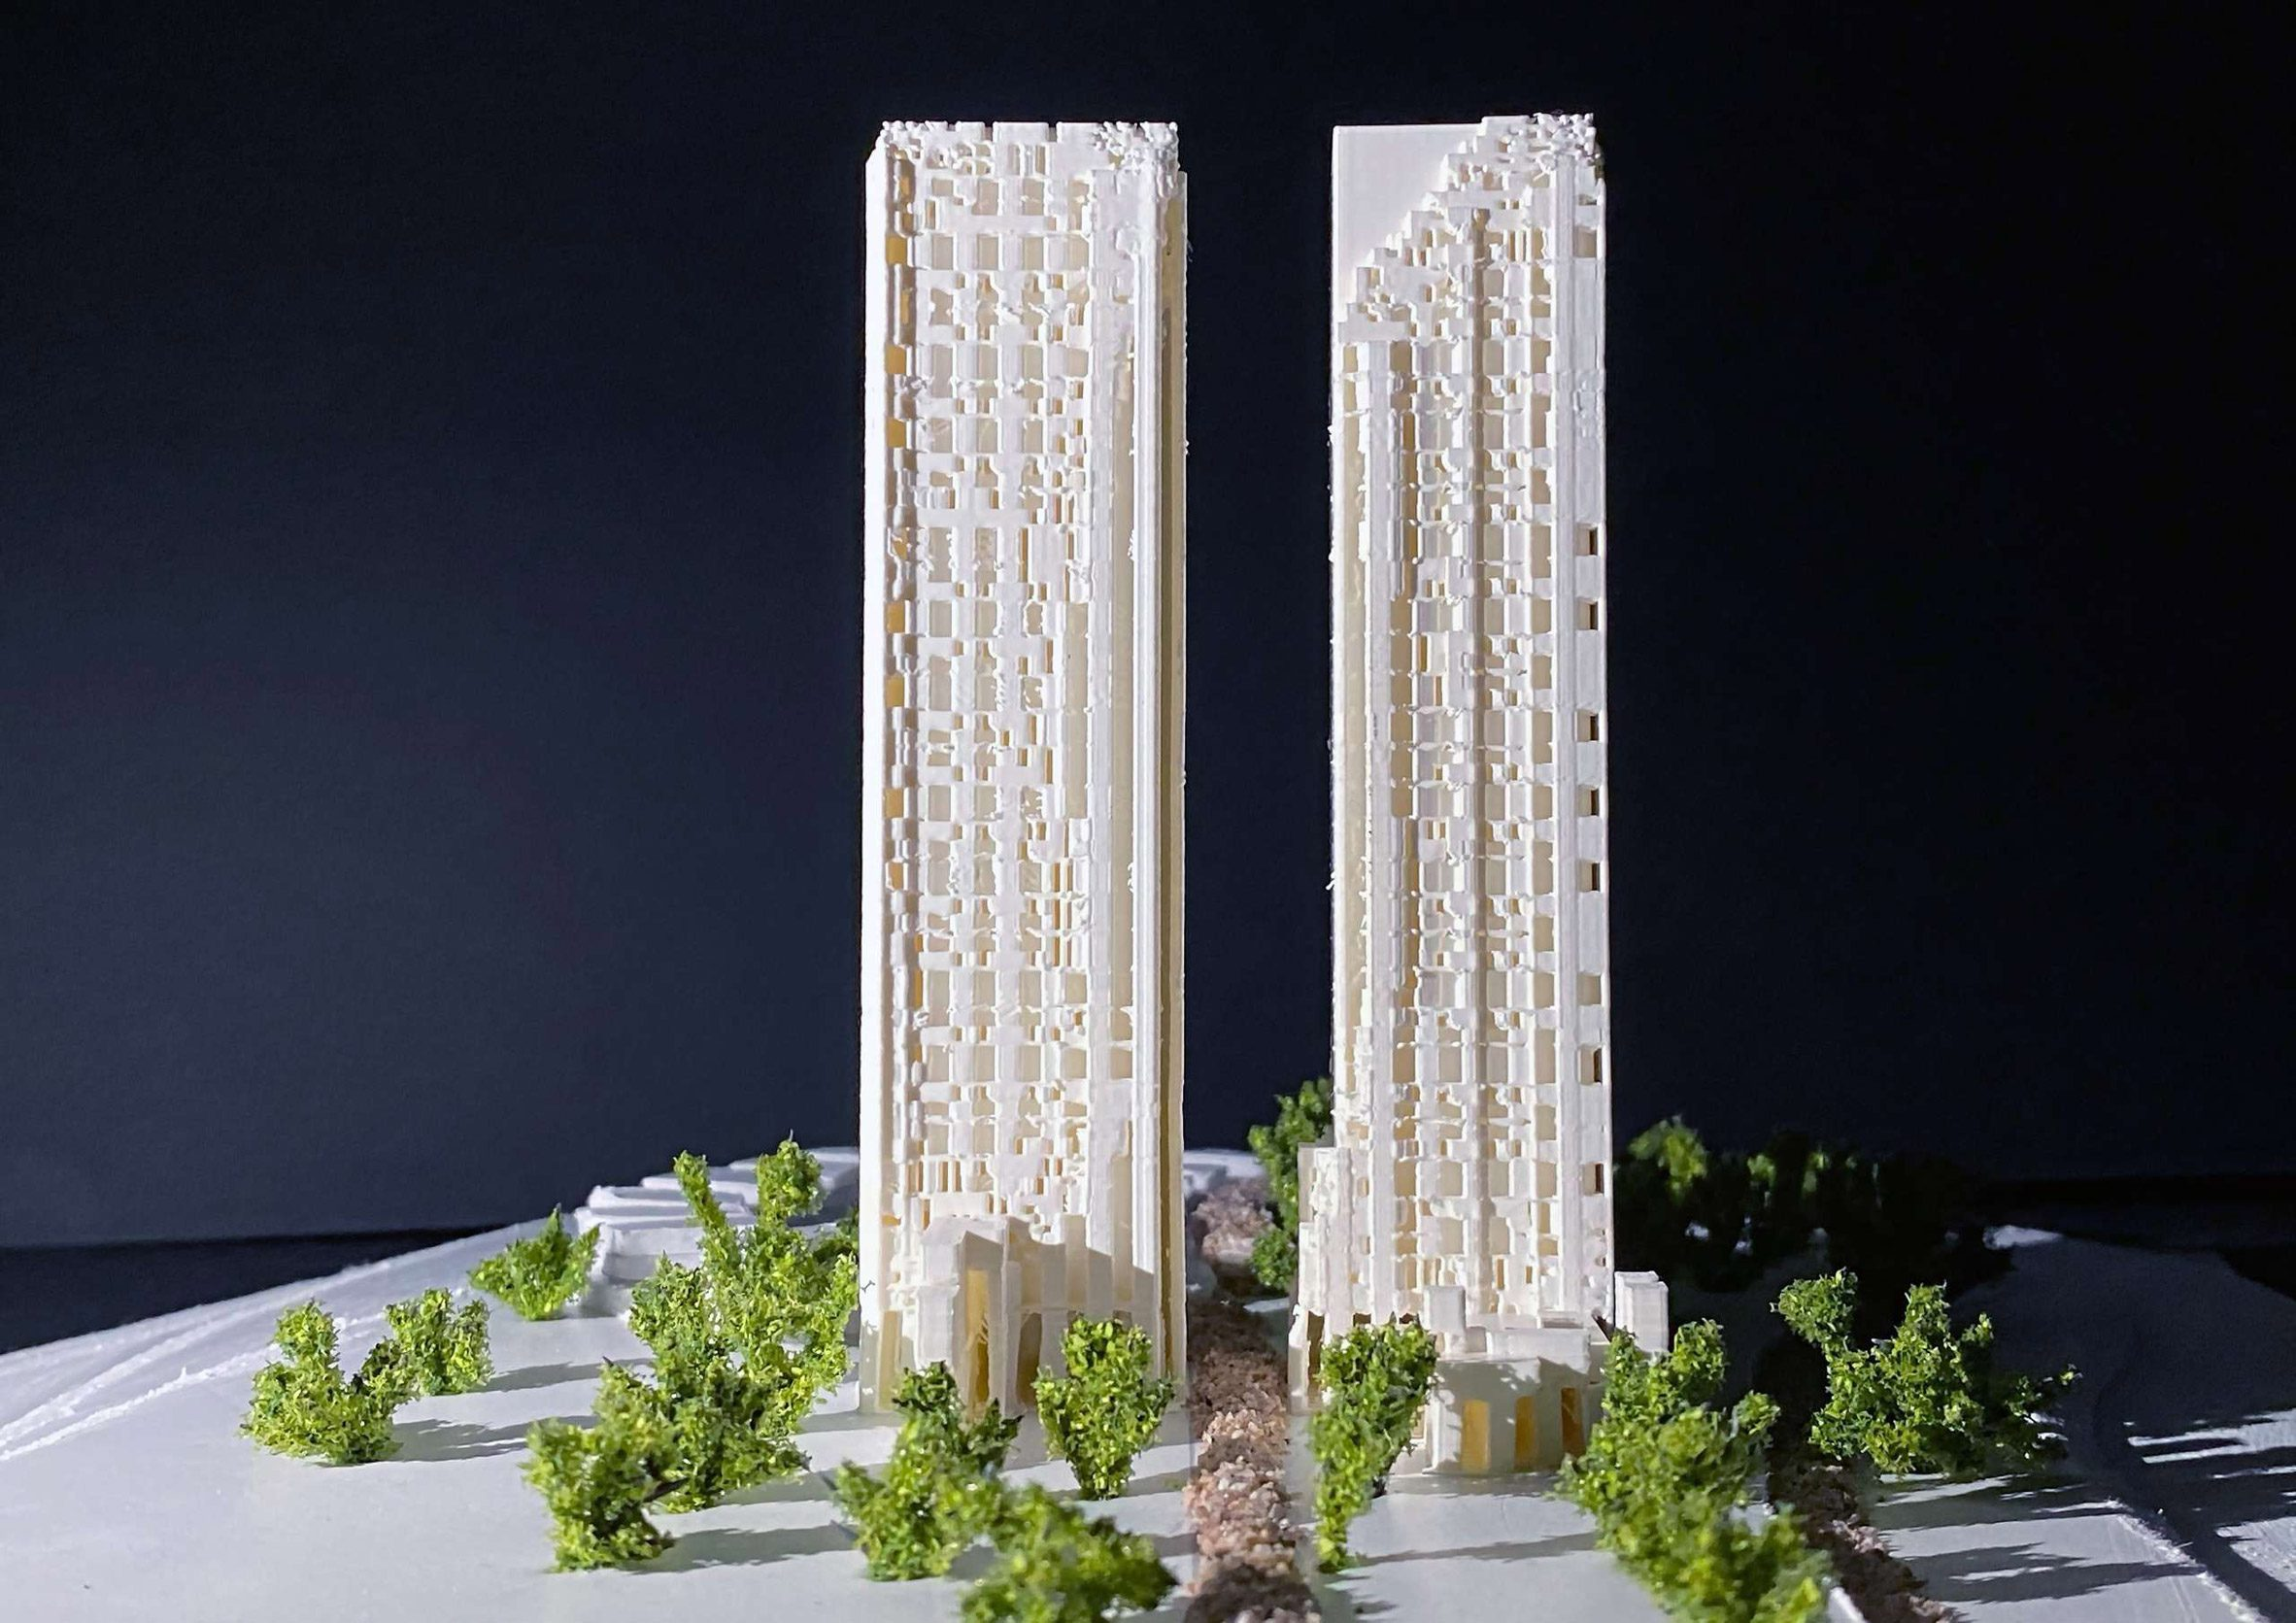 Architectural models of skyscrapers